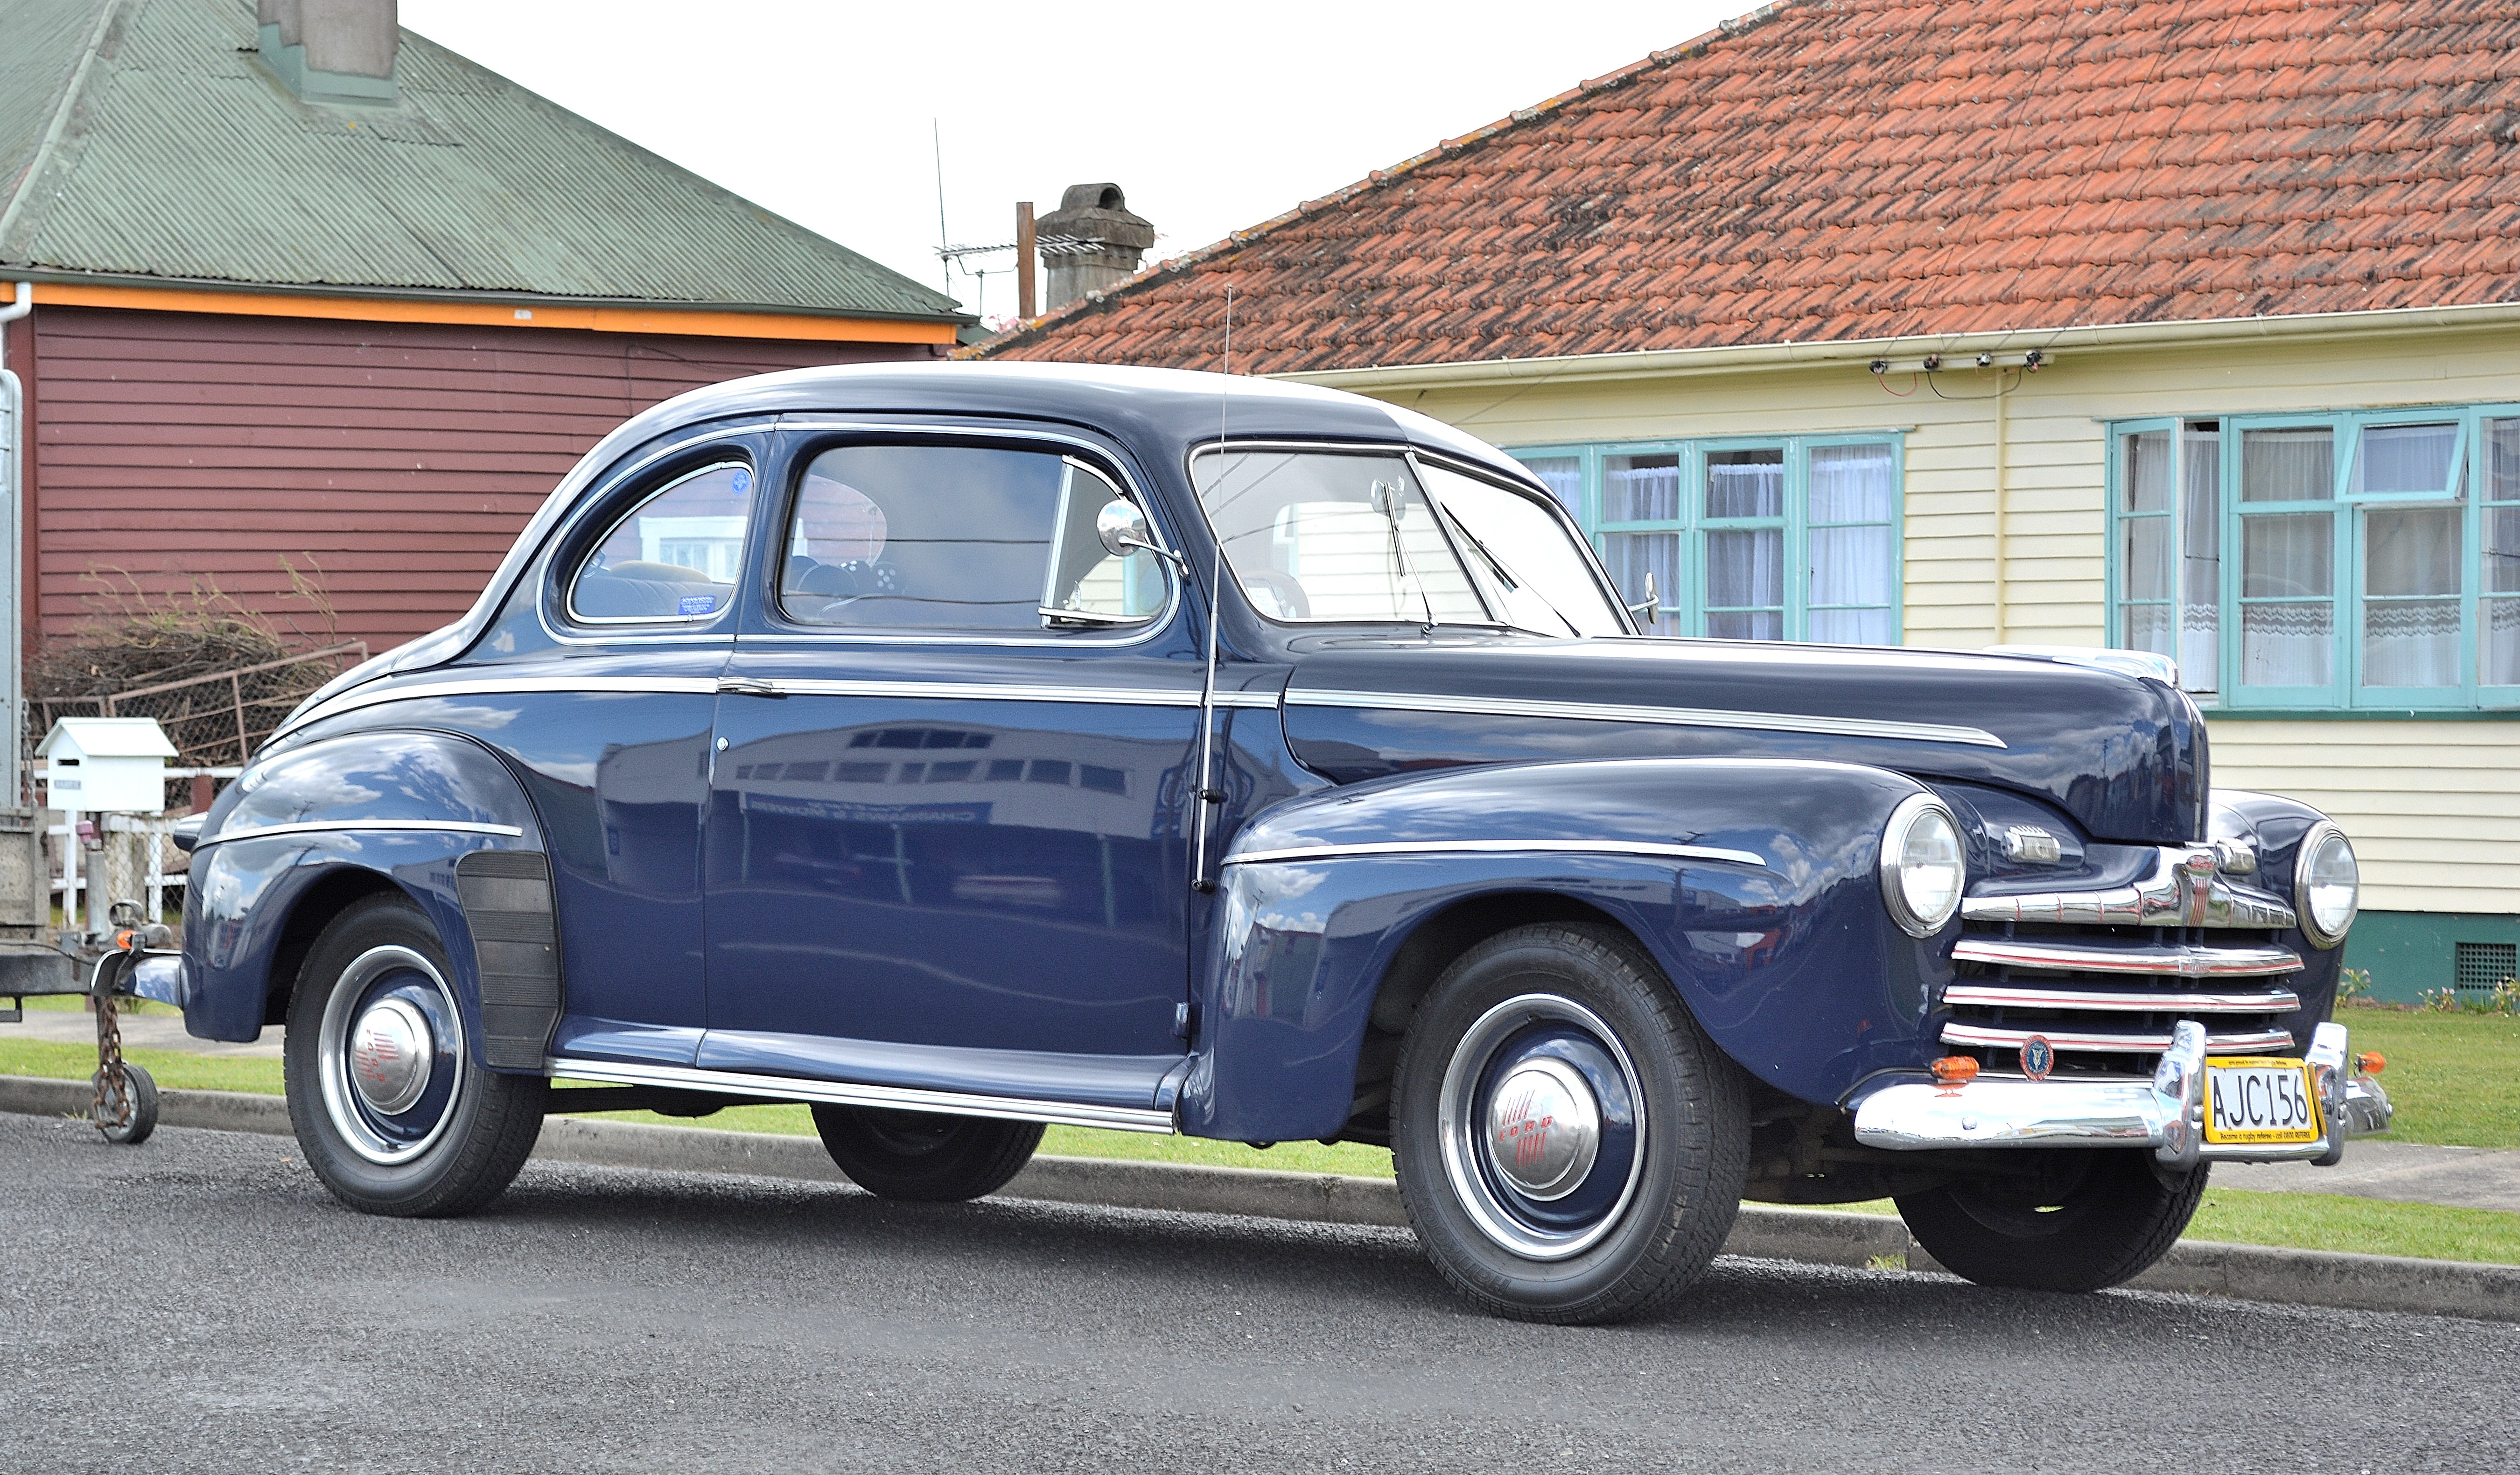 1946_Ford_V8_Club_Coupe_(15359652557).jp